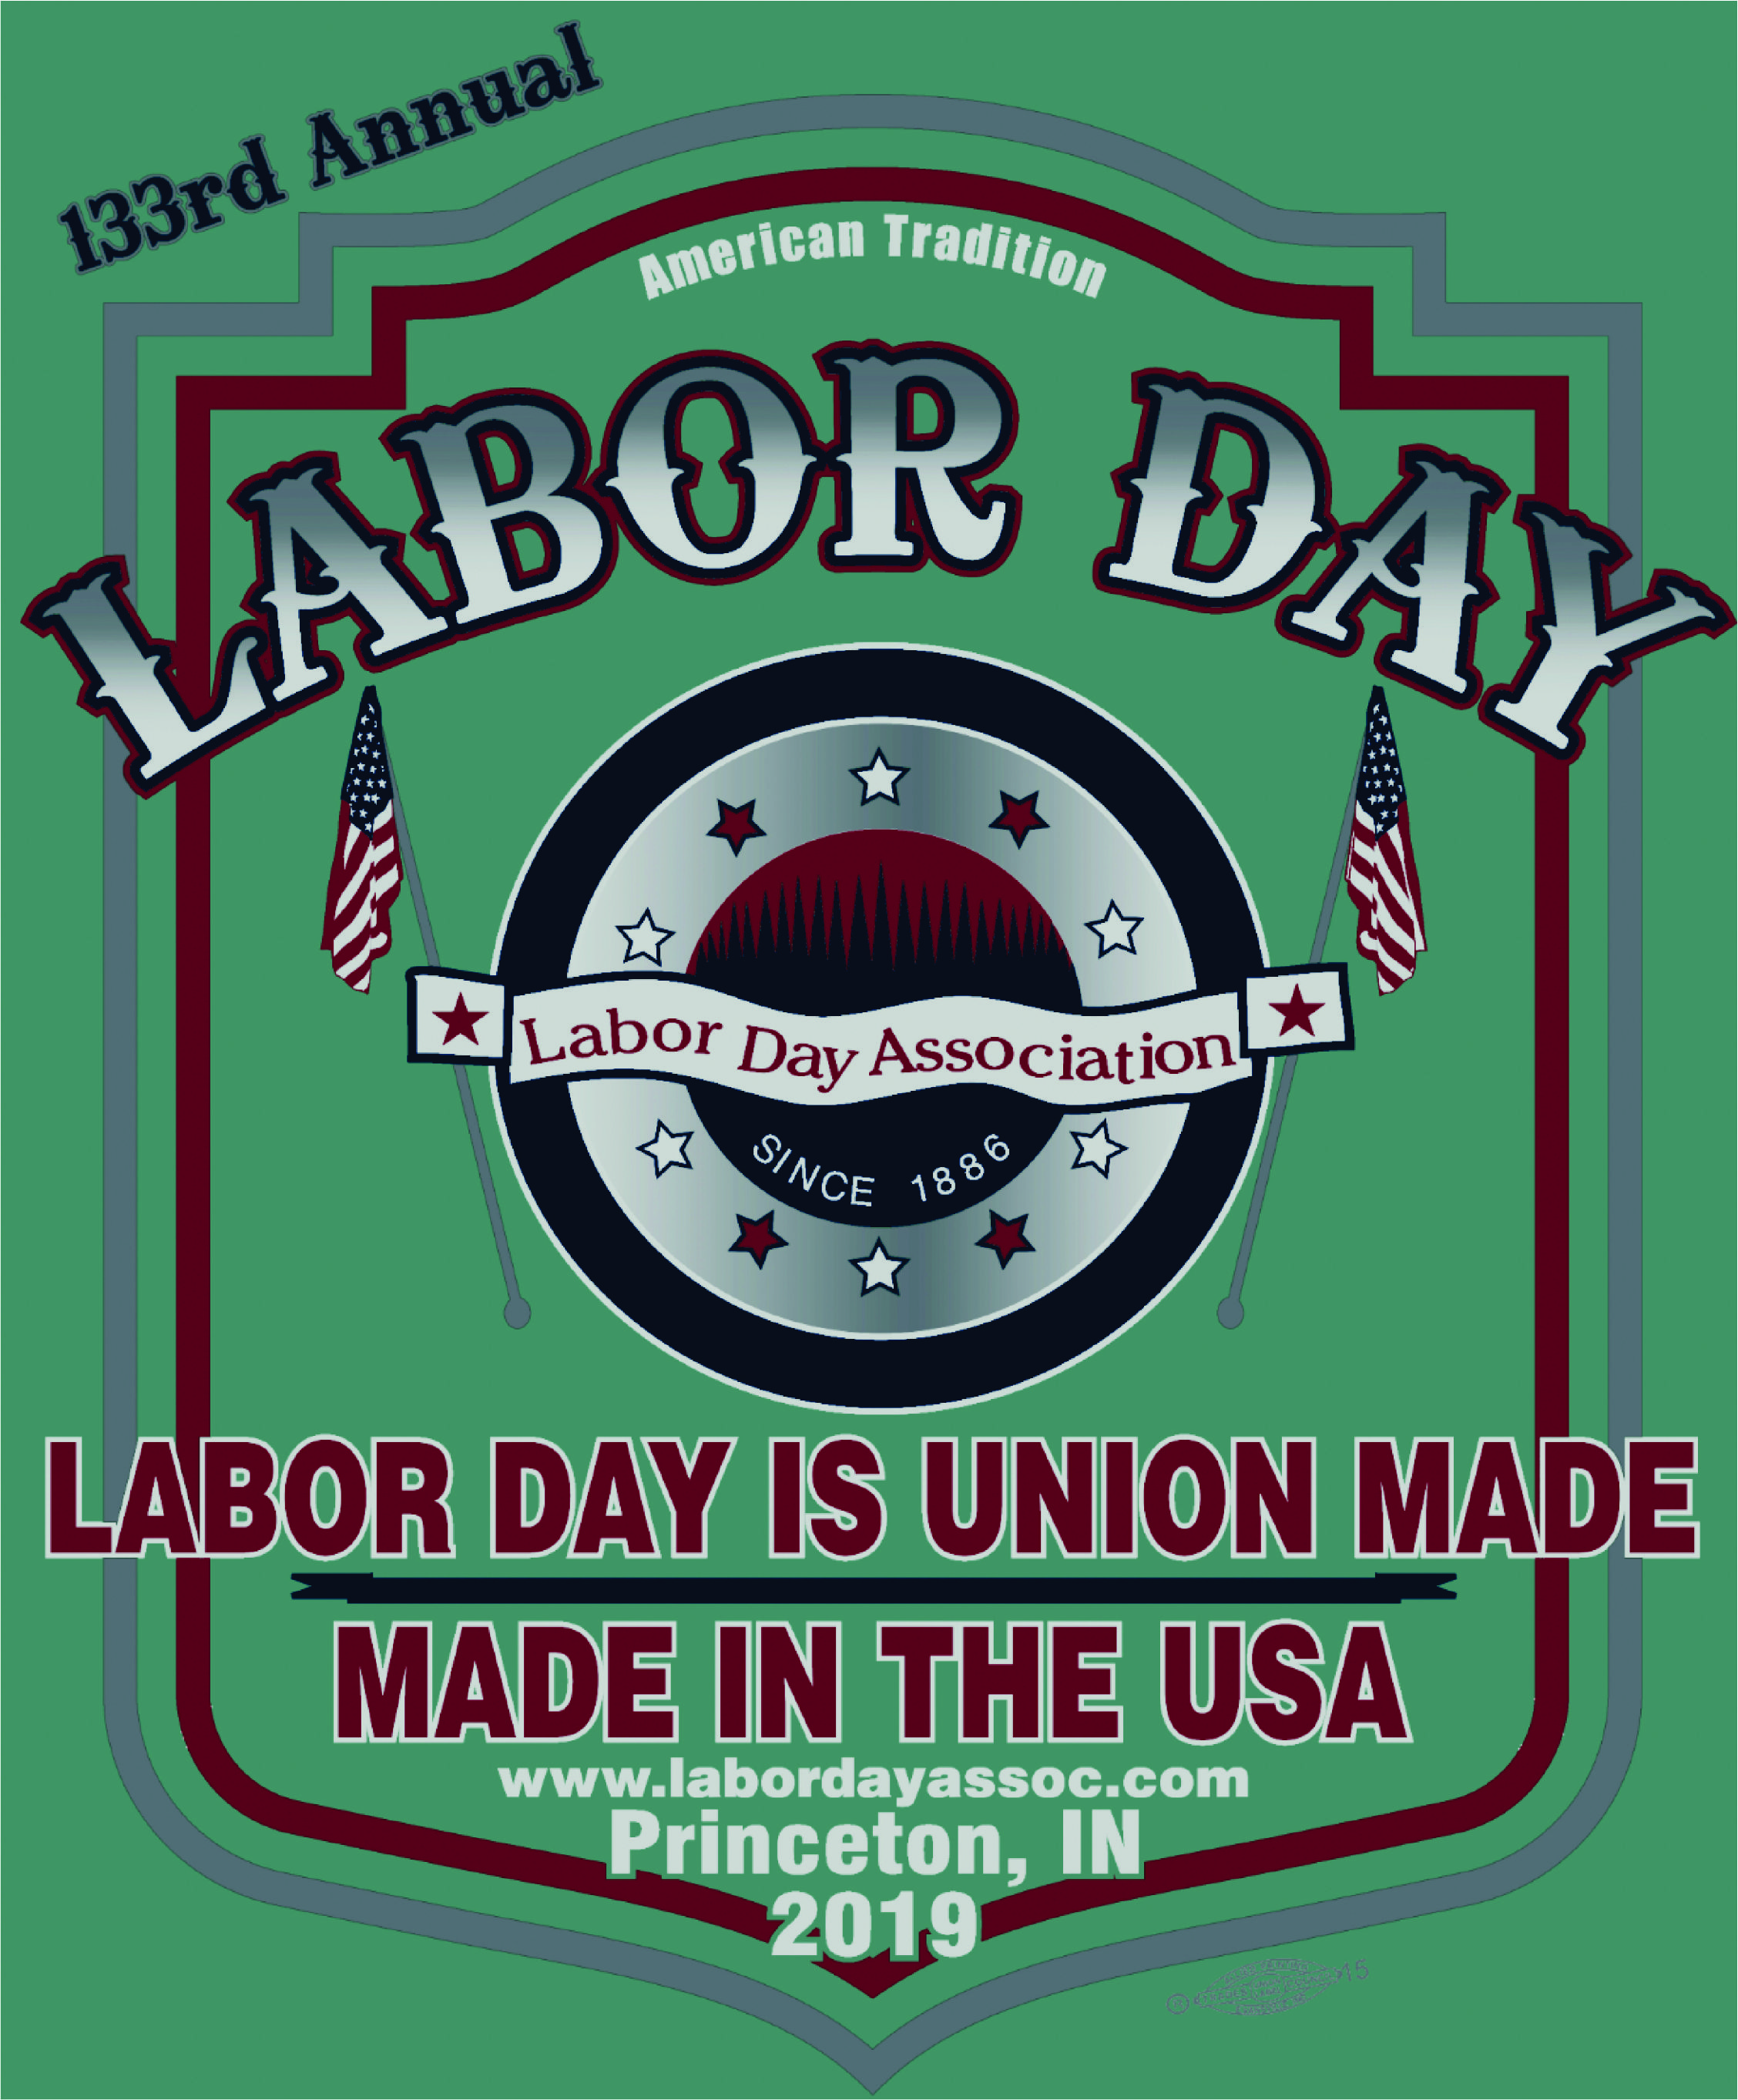 Celebration 2019 Labor Day Association